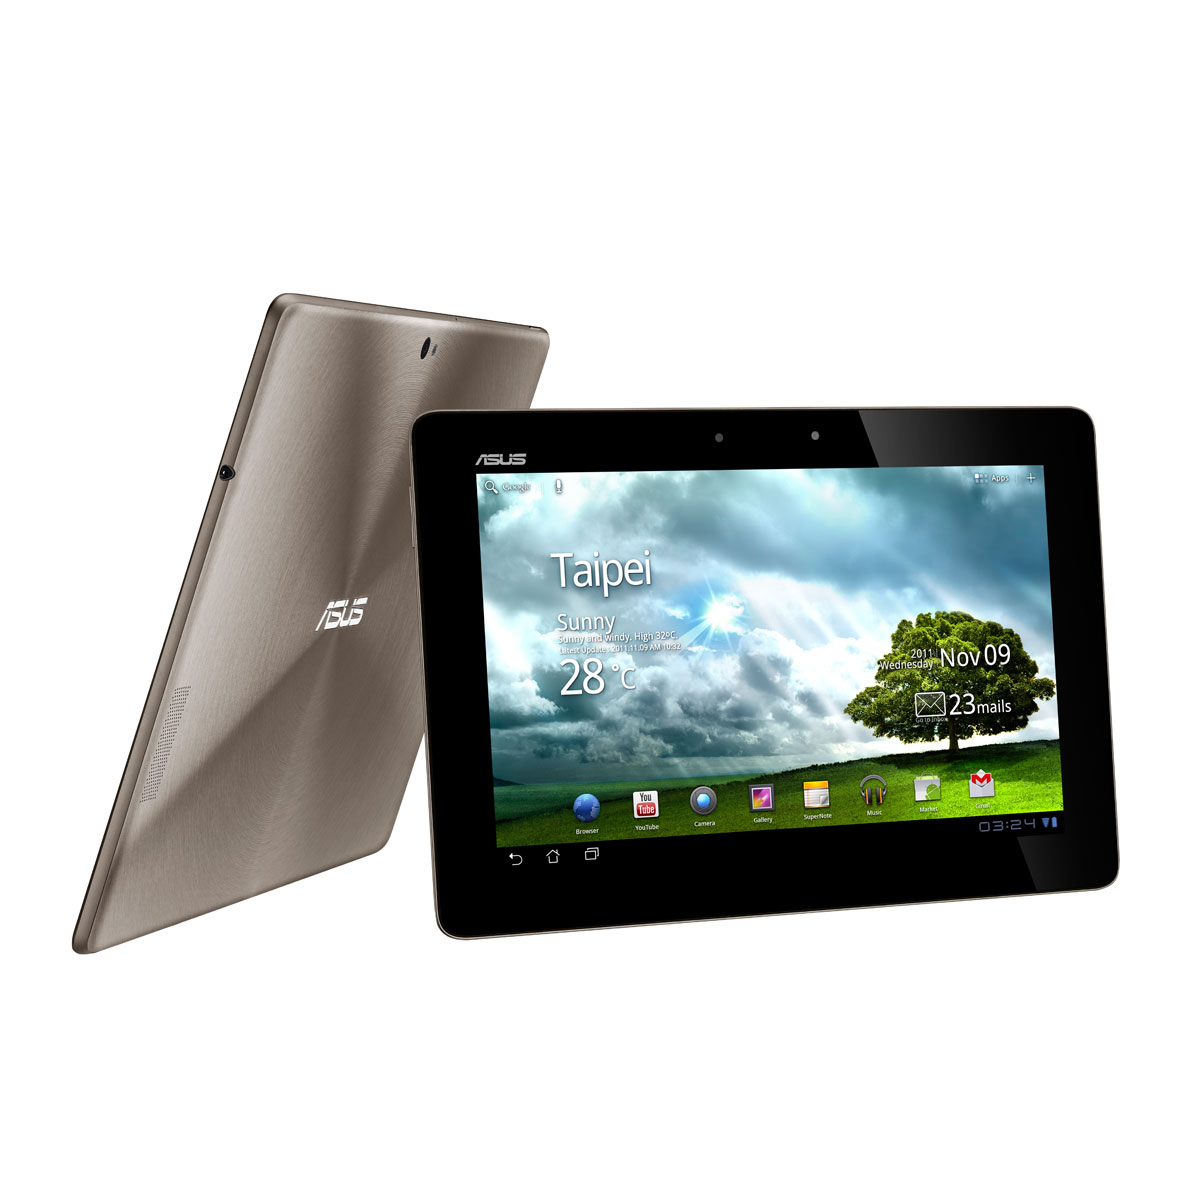 asus eee pad transformer prime tf201 champagne 64 go tablette tactile asus sur. Black Bedroom Furniture Sets. Home Design Ideas